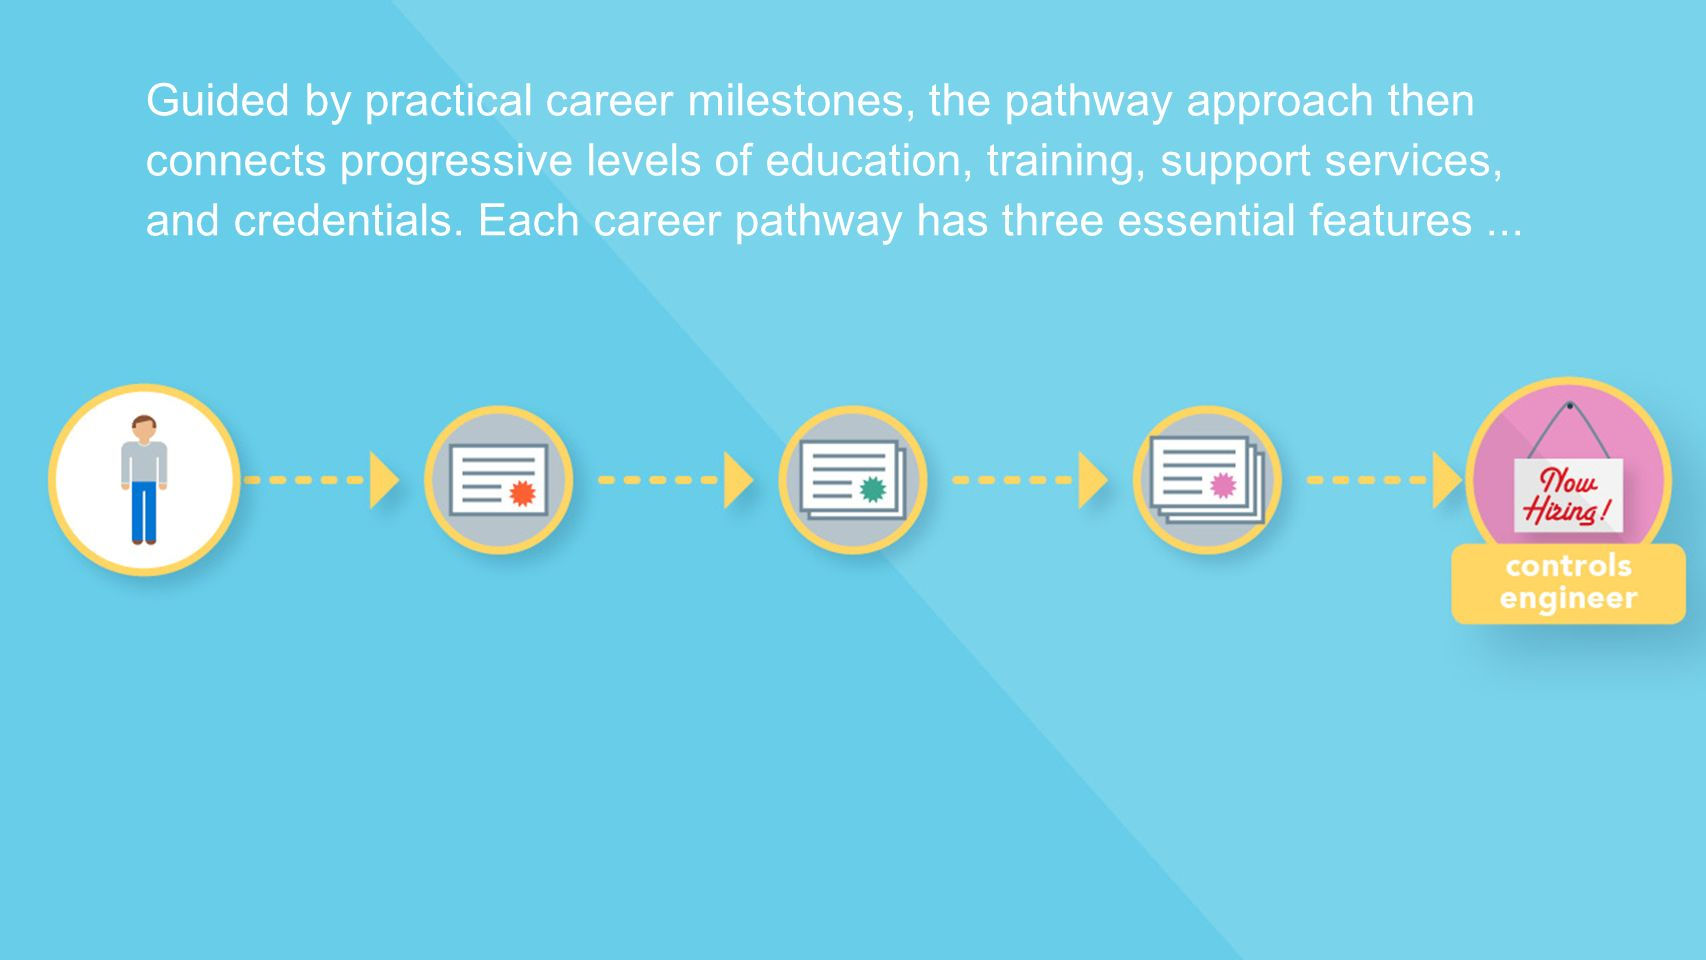 Guided by practical career milestones, the pathway approach then connects progressive levels of education, training, support services, and credentials.